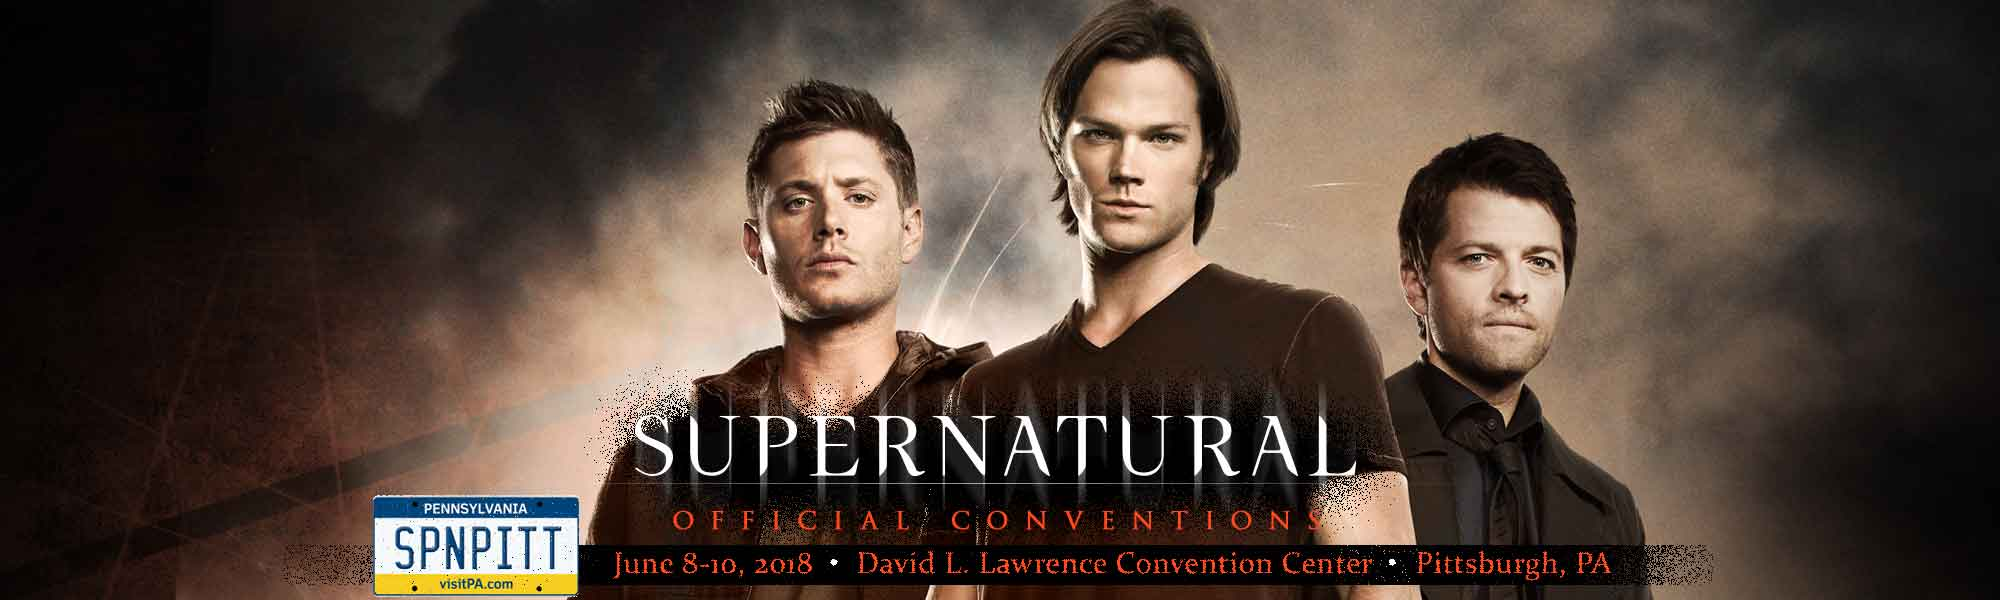 Creation Entertainments Supernatural Offical Convention In